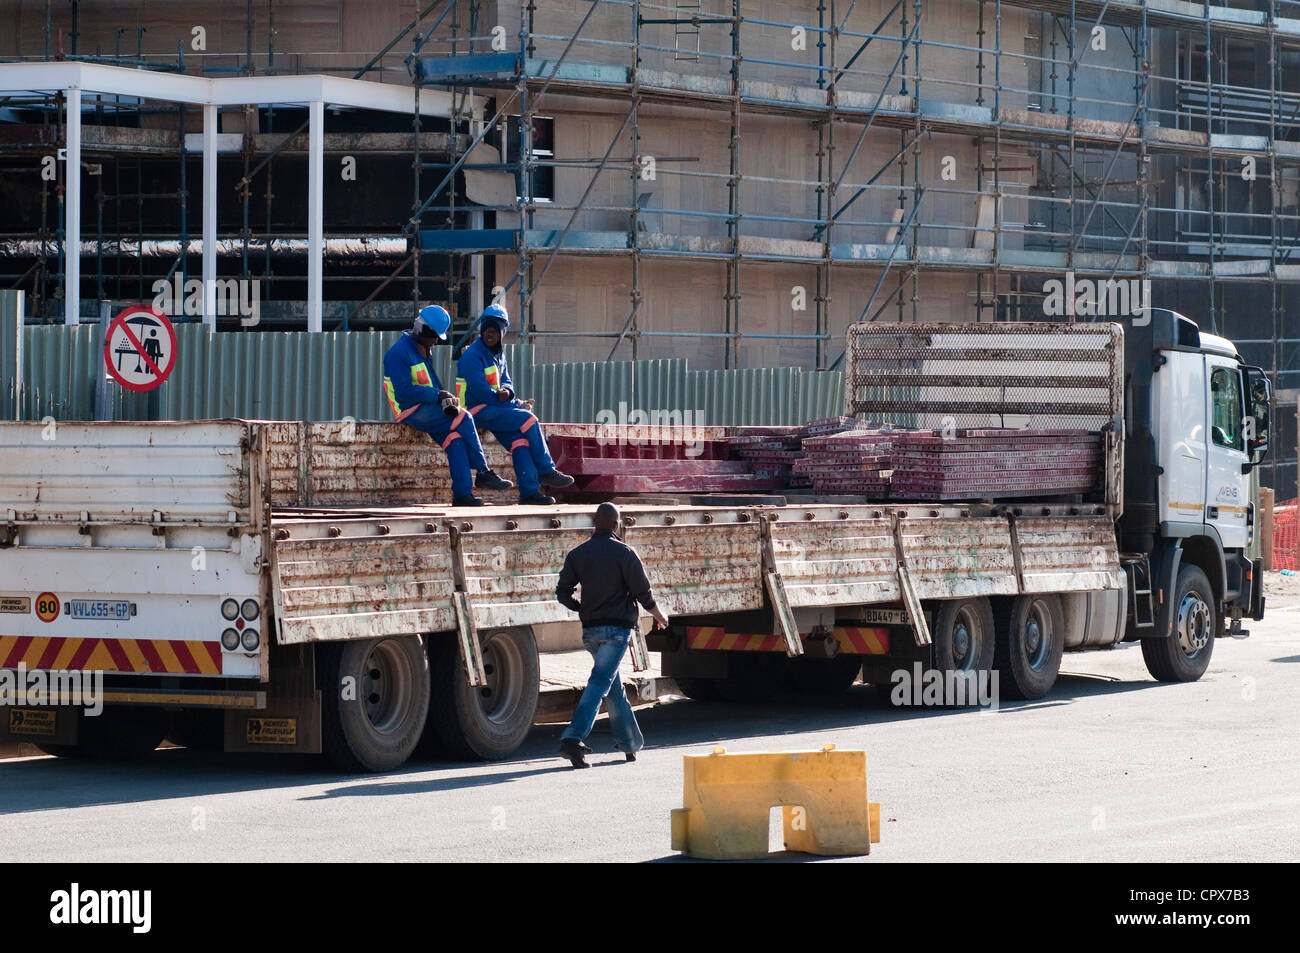 Construction workers sitting on a construction vehicle, Sandton - Stock Image